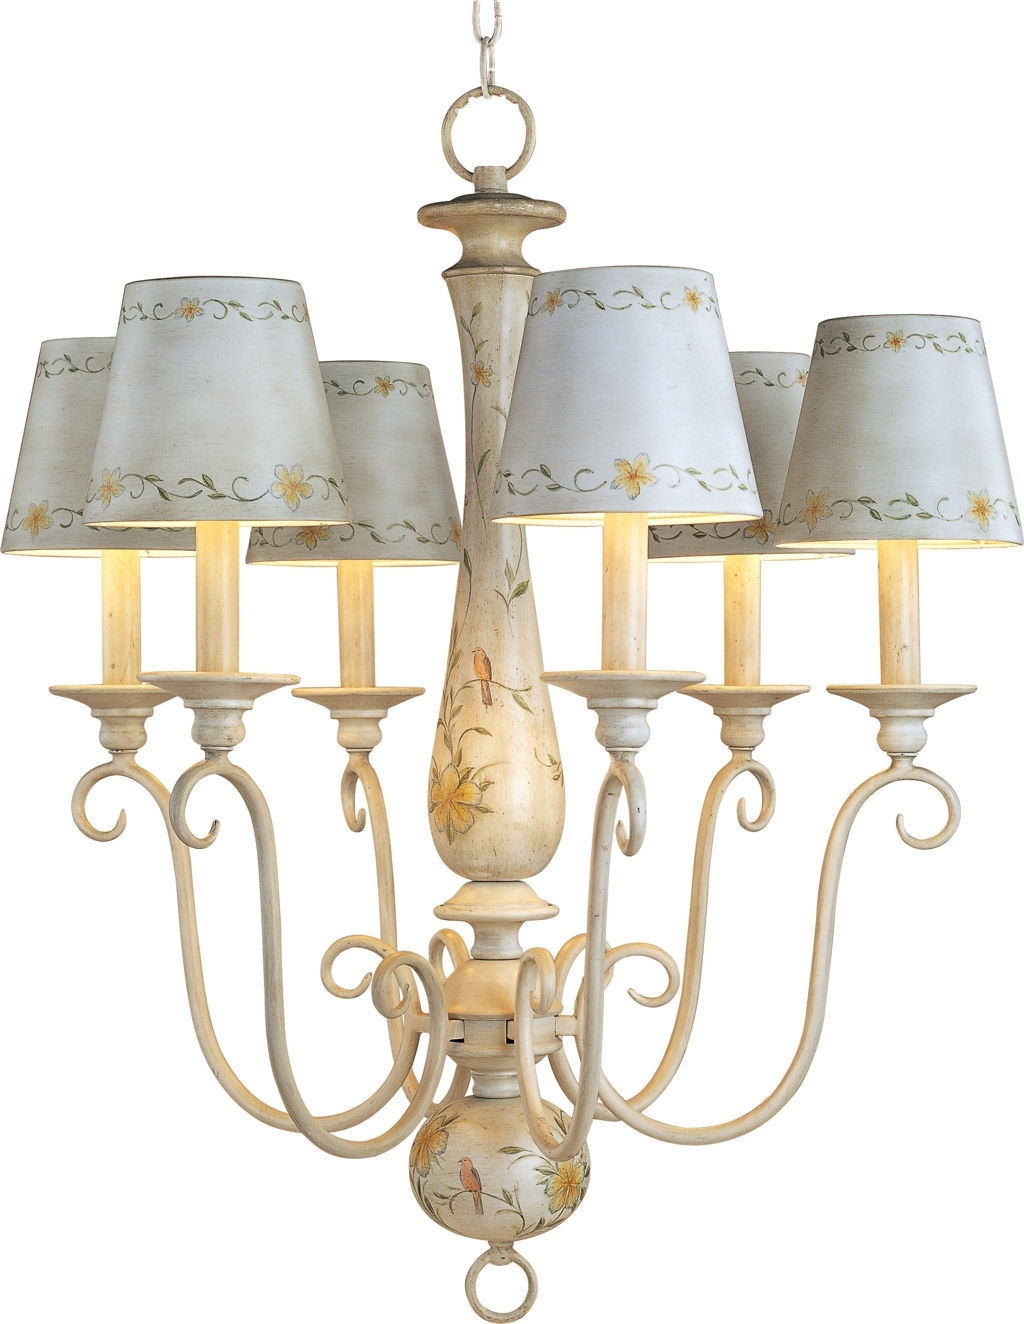 2017 Chandelier Lamp Shades Plus 5 Inch Lamp Shades Plus Small Clip On Intended For Clip On Drum Chandelier Shades (View 1 of 15)